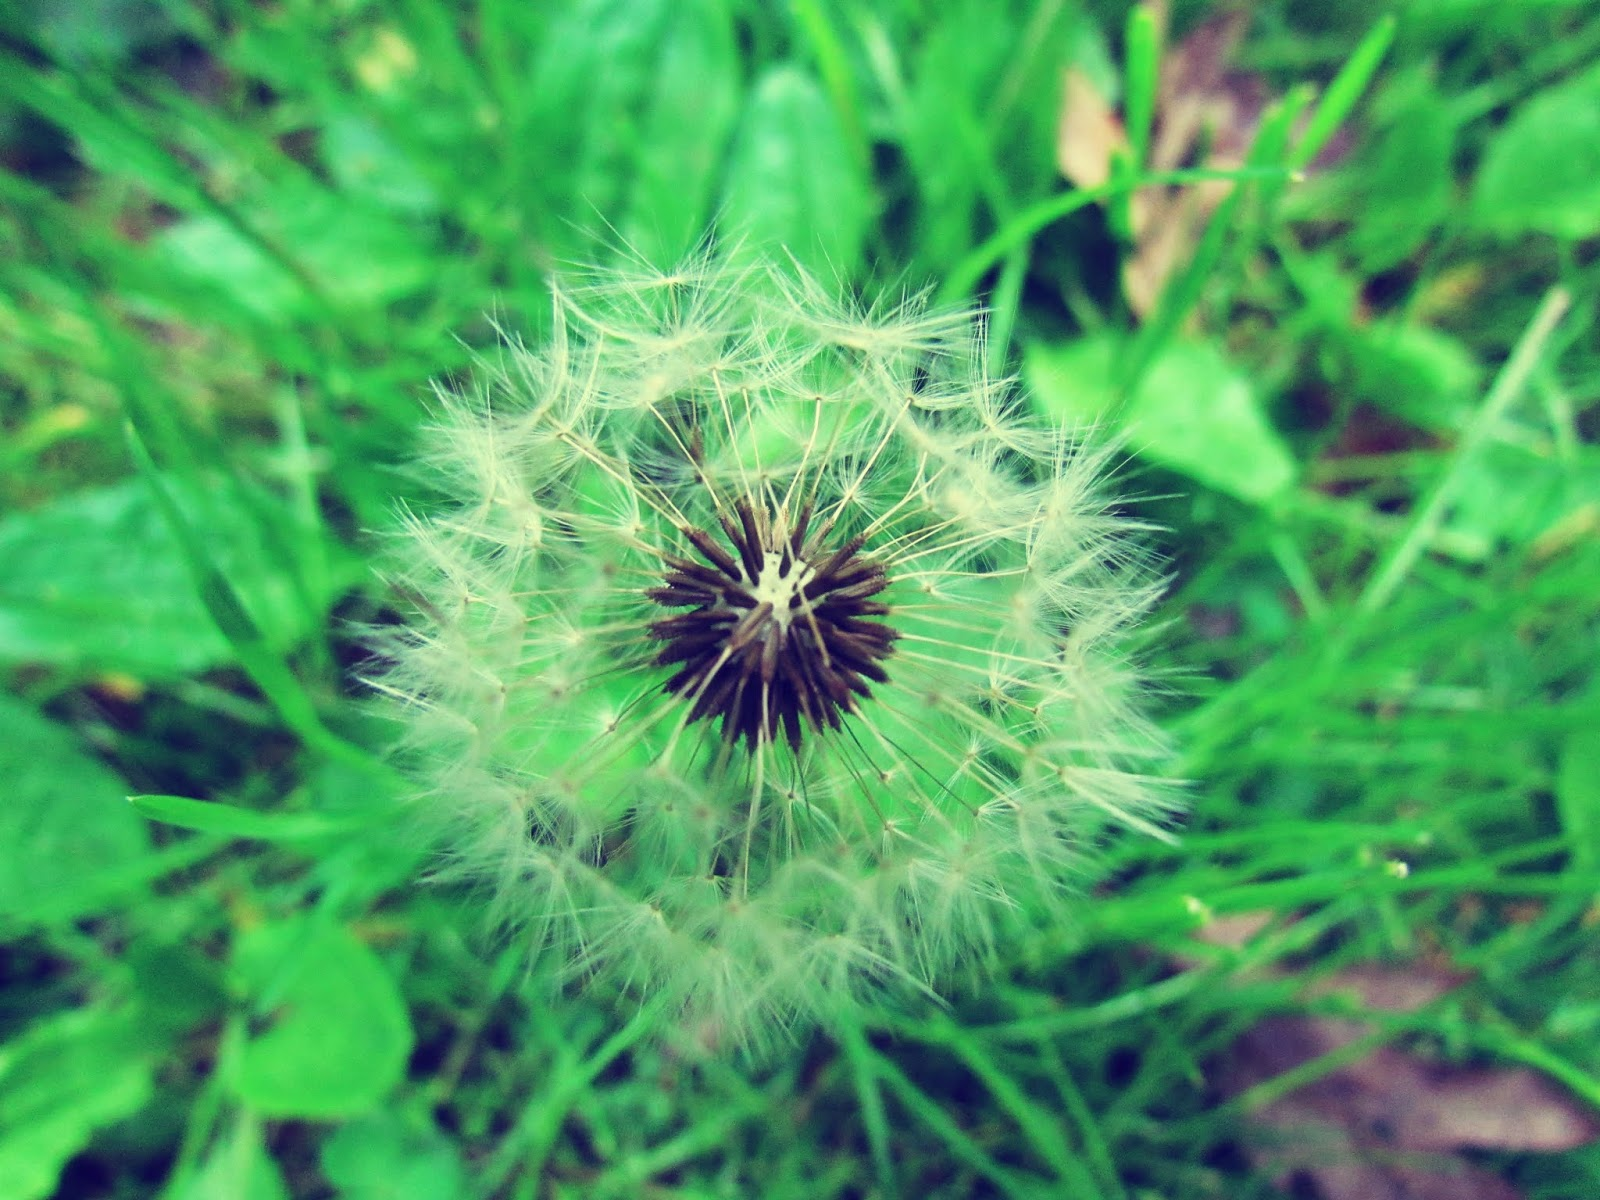 Make a Wish Dandelion in the Tall Grass + Dandelion Seeds in Summertime